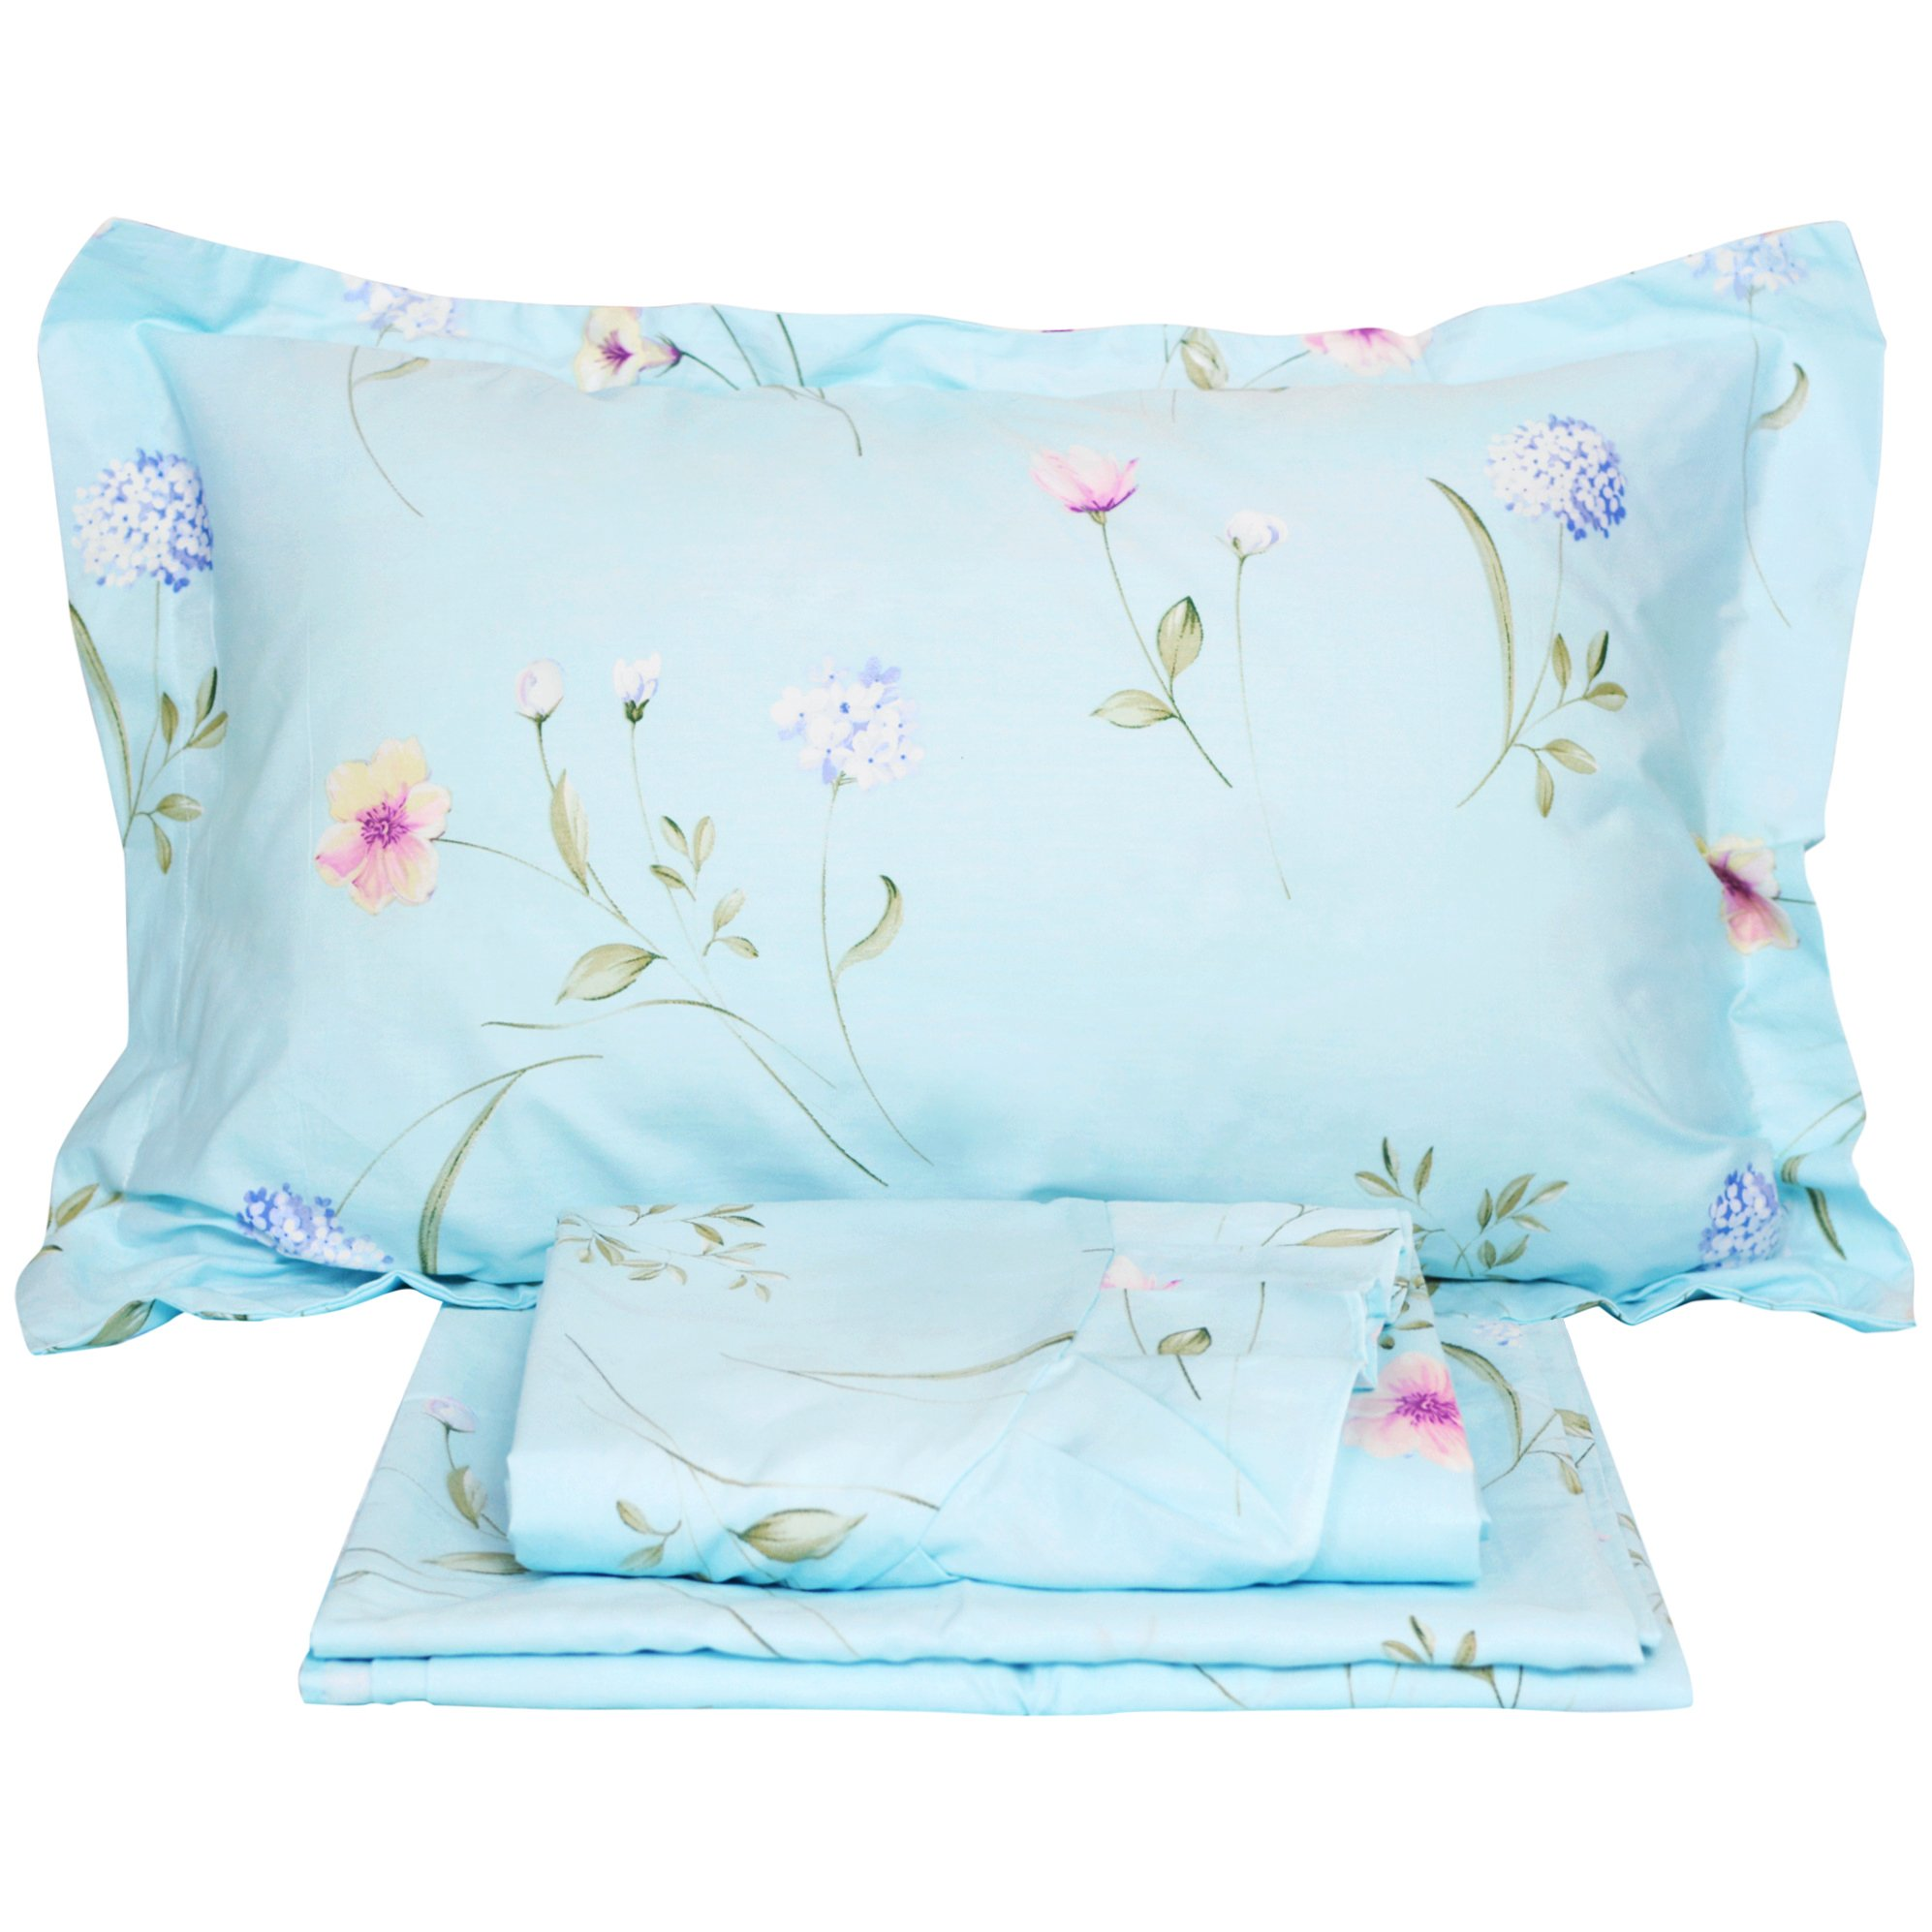 FADFAY Cotton Bed Sheet Set Blue Hydrangea Floral Bed Sheets 4-Piece Queen Size